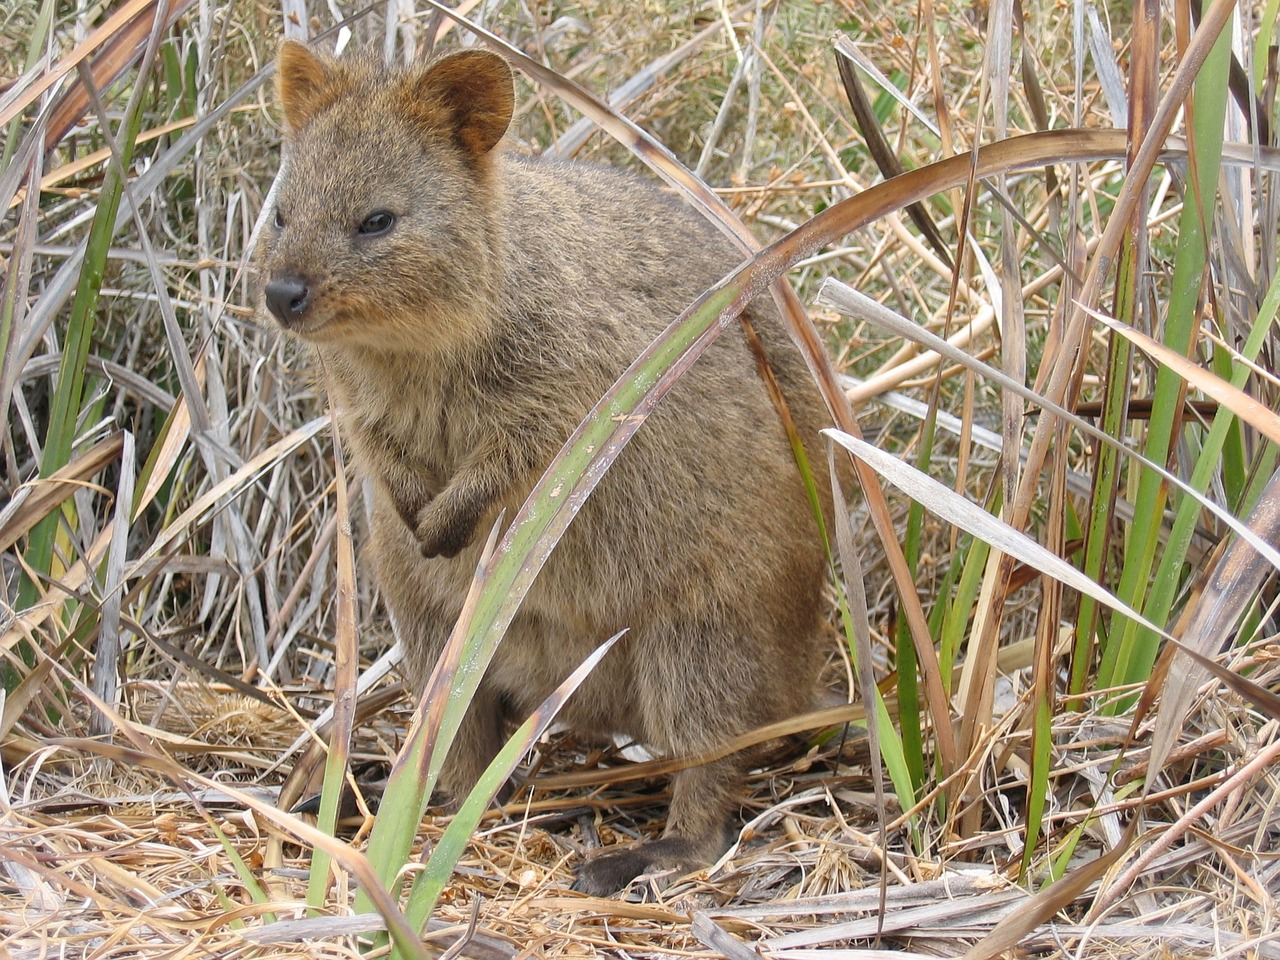 Quokka sitting in grass, Rottnest Island